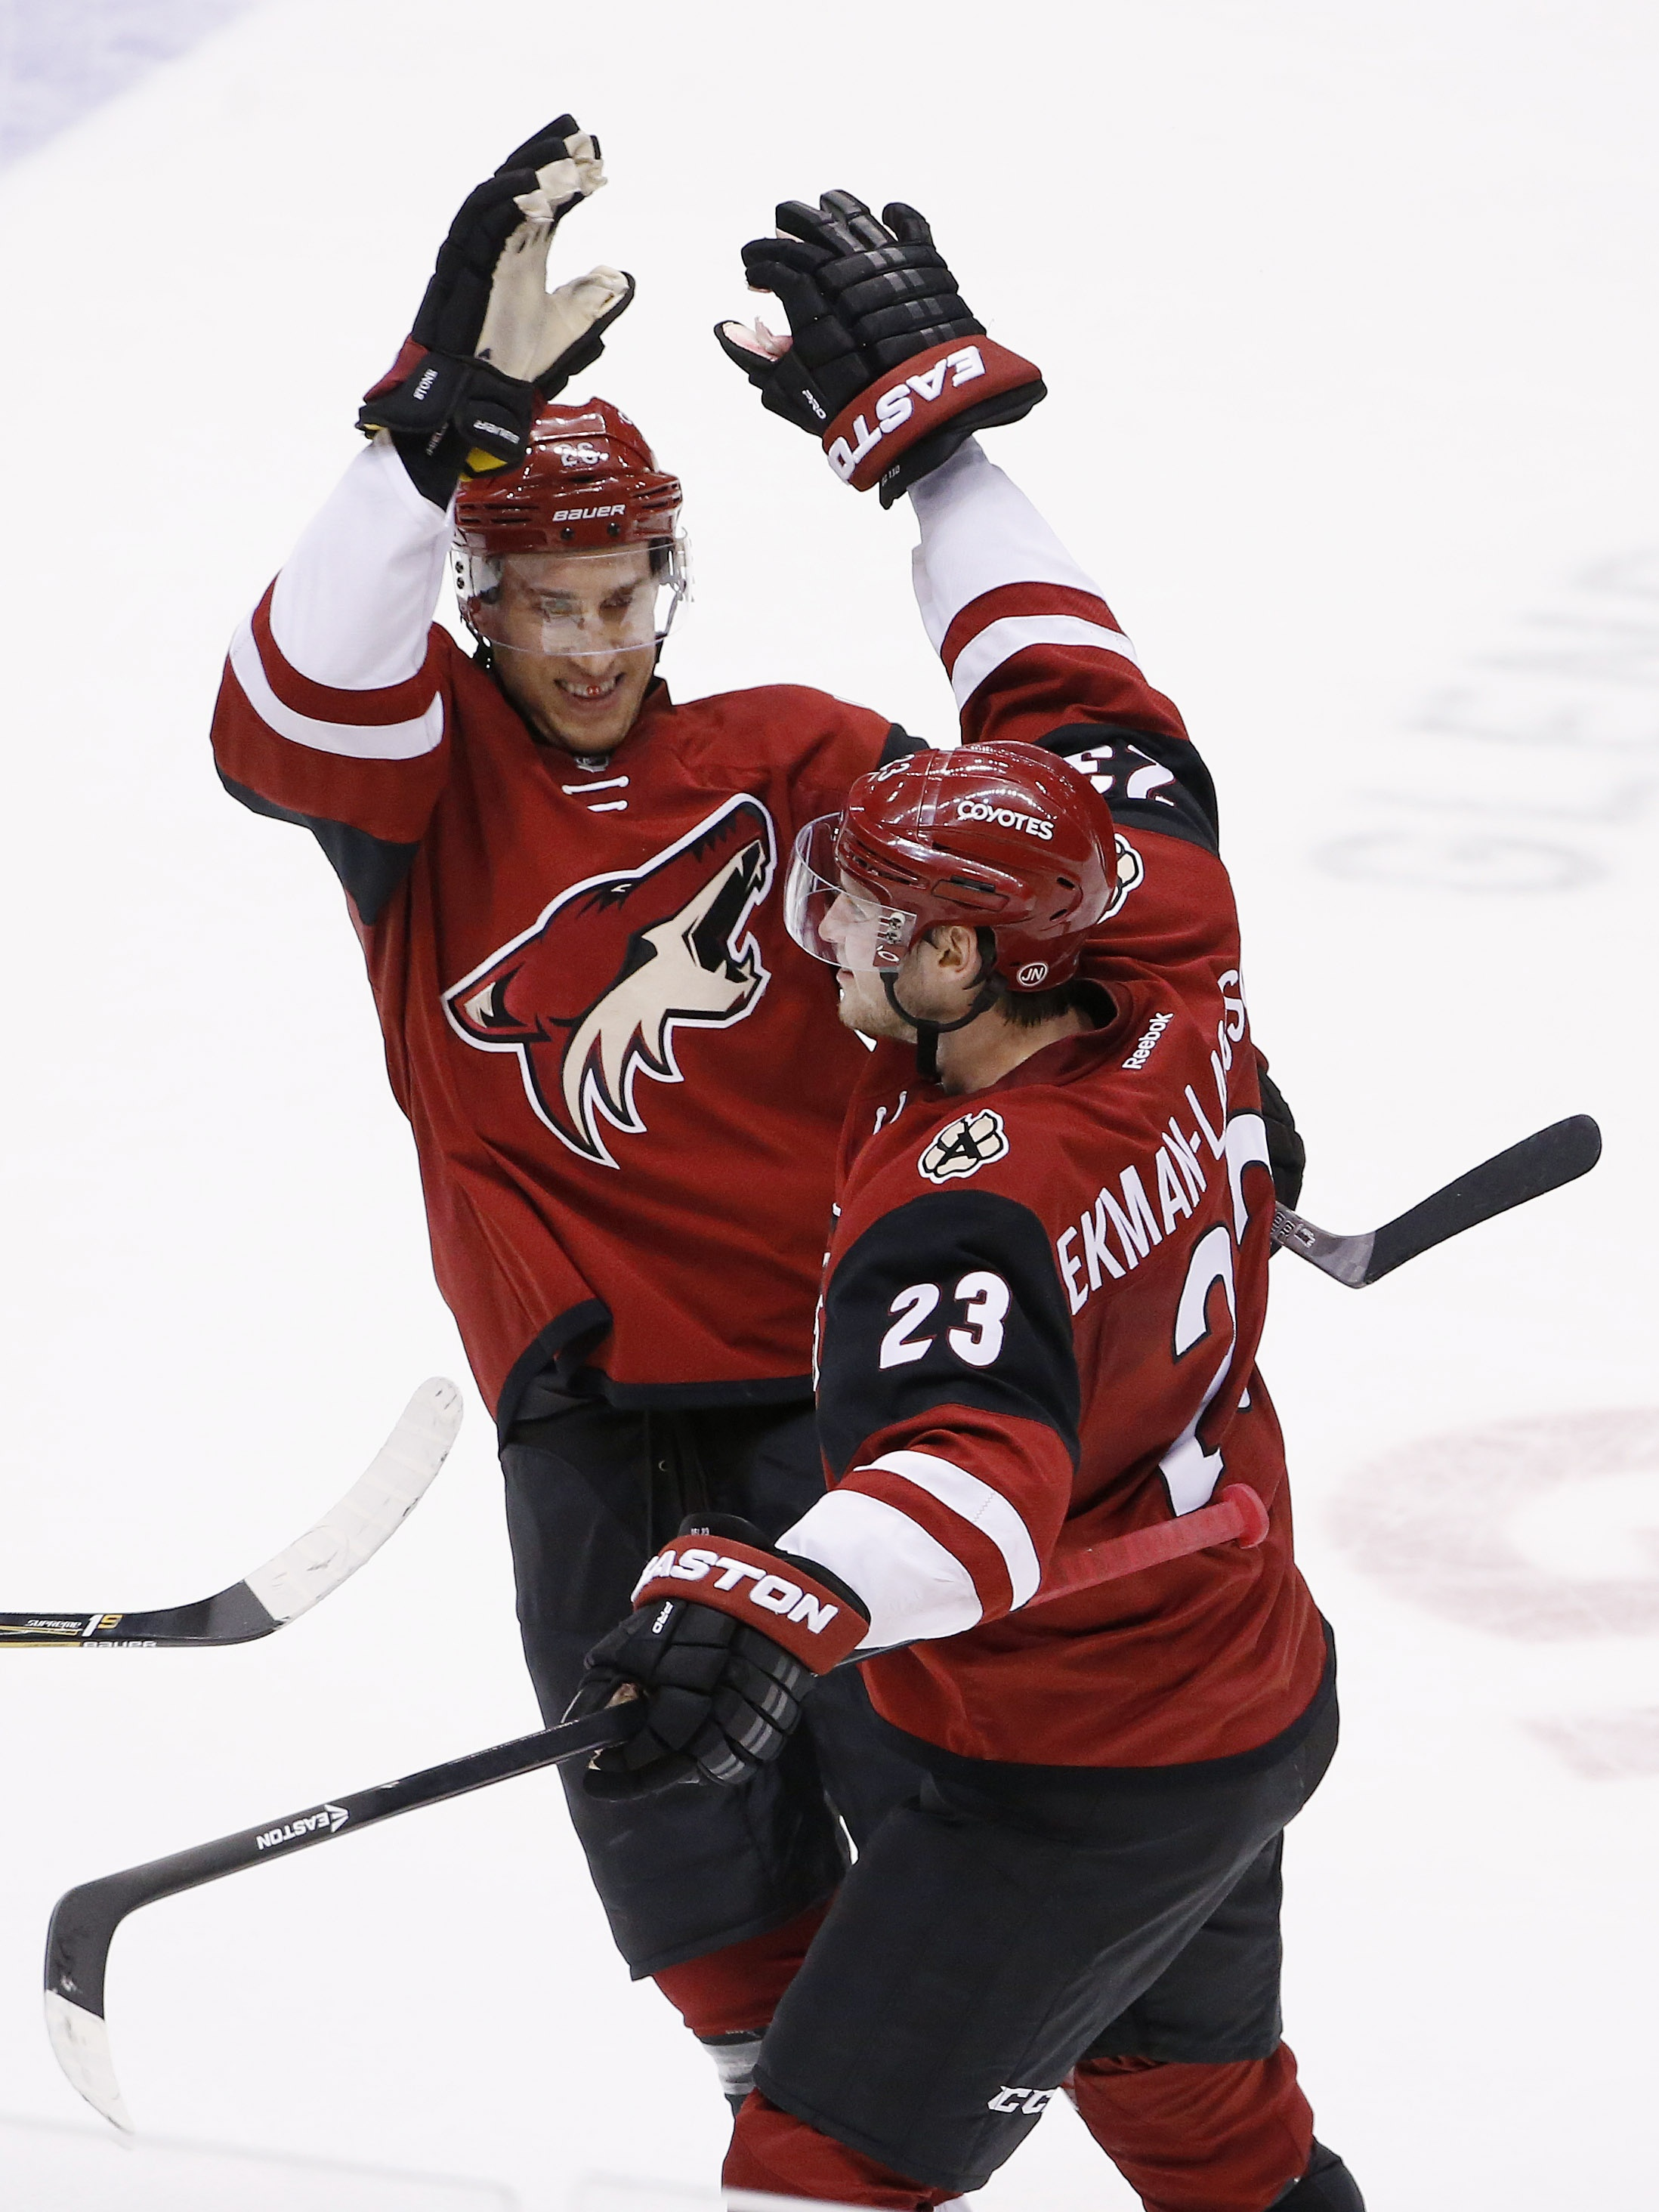 Arizona Coyotes' Oliver Ekman-Larsson (23), of Sweden, celebrates his game-winning goal against the Edmonton Oilers with Michael Stone, left, during overtime of an NHL hockey game Tuesday, Jan. 12, 2016, in Glendale, Ariz. The Coyotes defeated the Oilers